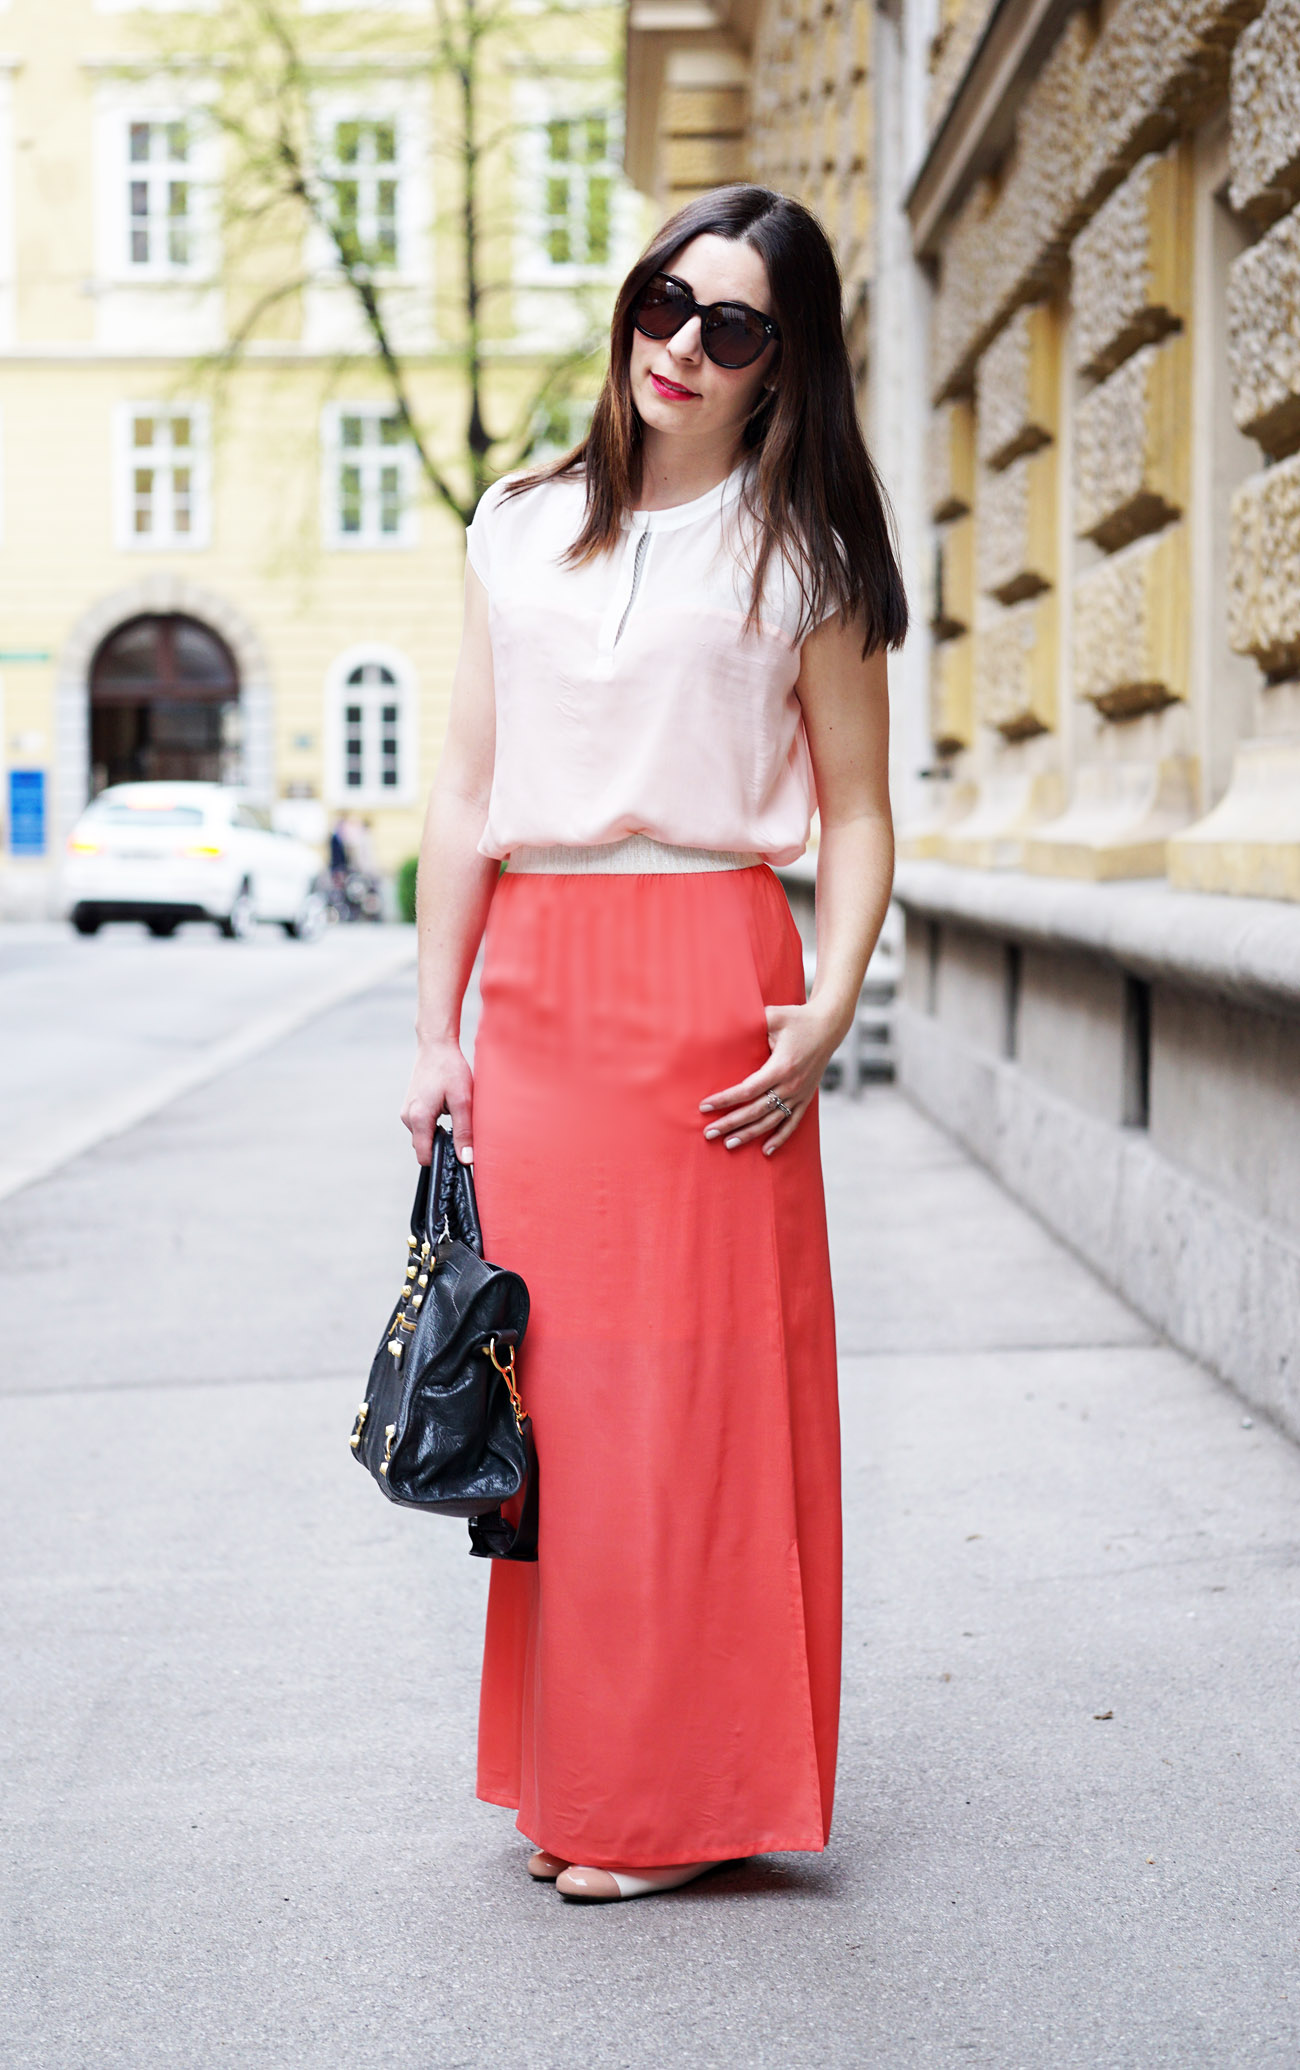 Graz Fashionblog Outfit Me May 6